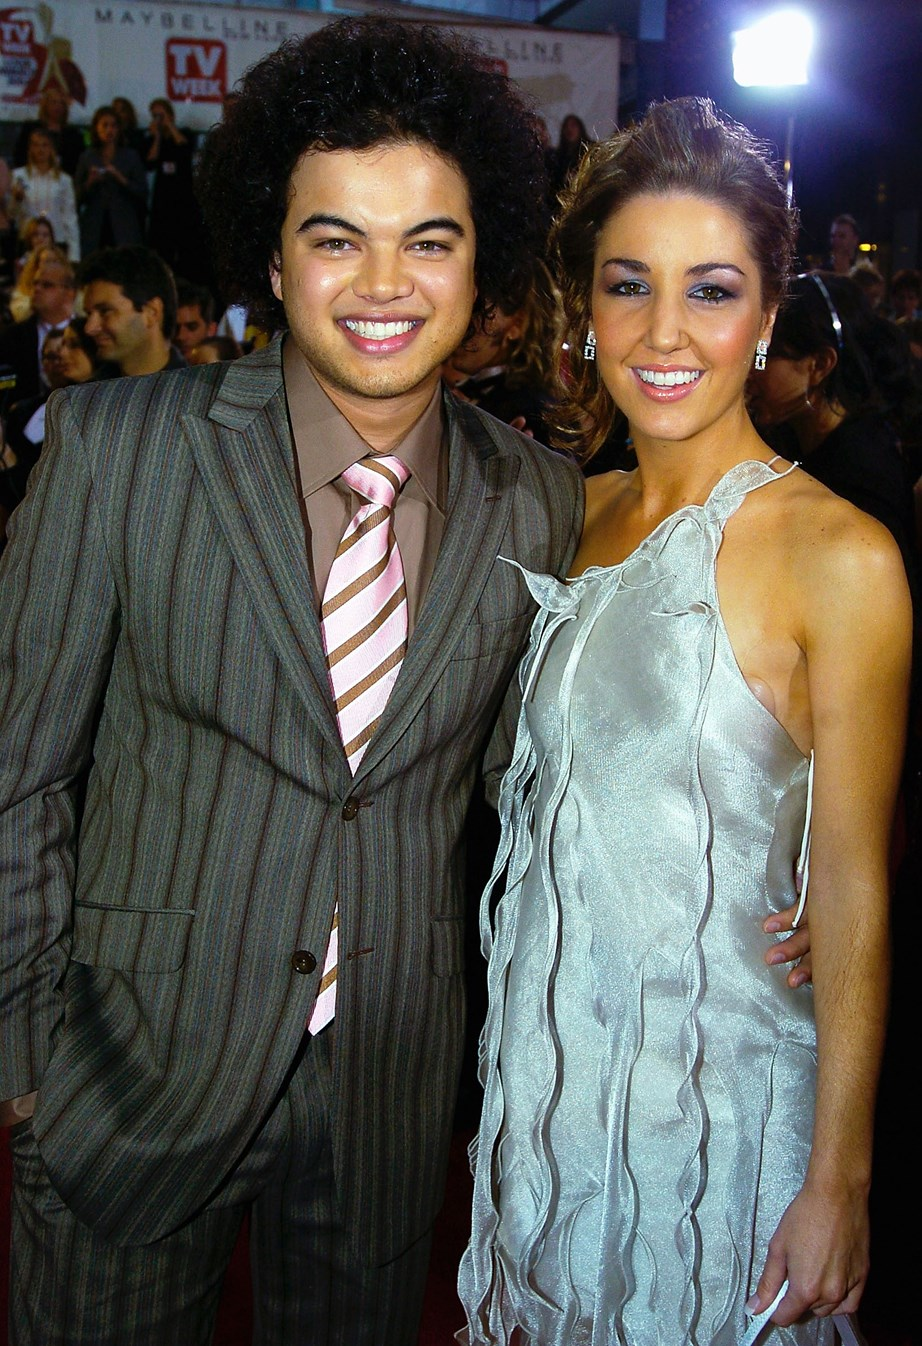 A baby-faced Guy and his wife,Jules, walking the red carpet at the 2004 Logie Awards, right after he rose to fame.